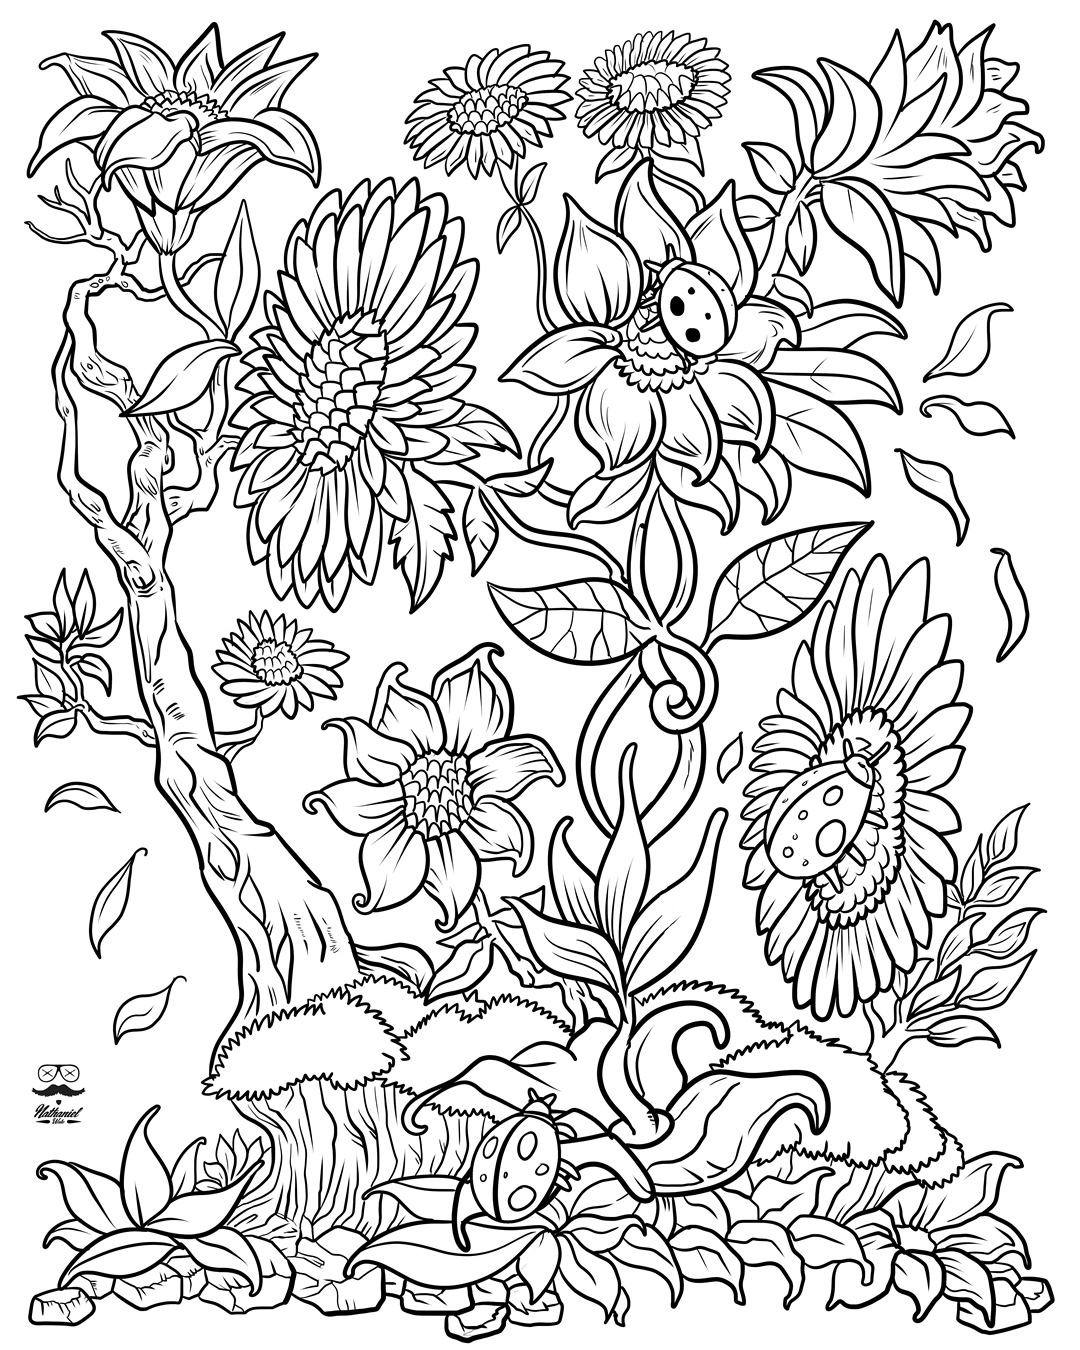 coloring books for adults flowers vintage flower coloring pages on behance coloring books flowers adults for